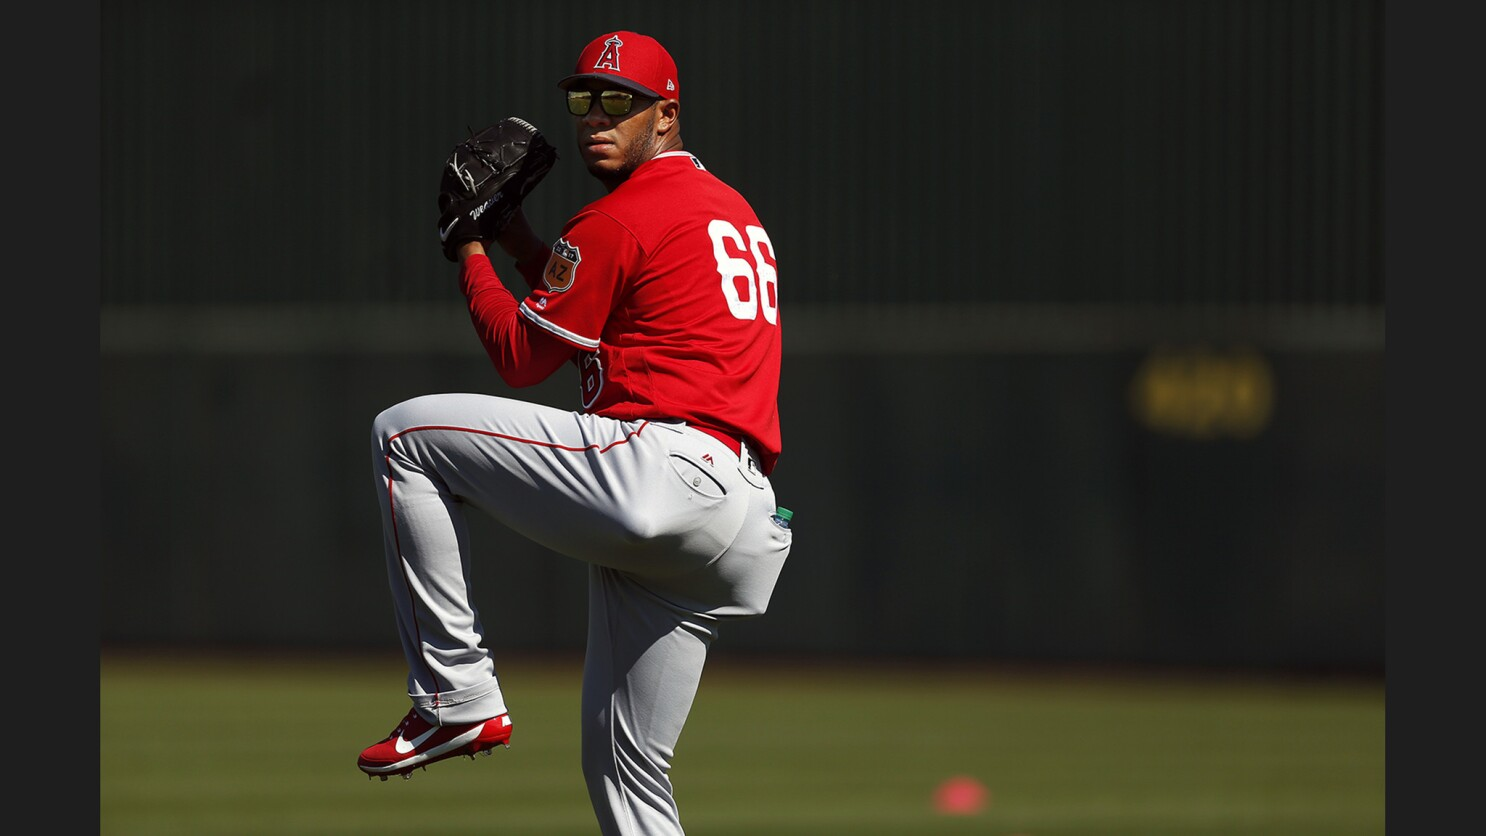 Angels' JC Ramirez will pitch in relief upon return from injured list